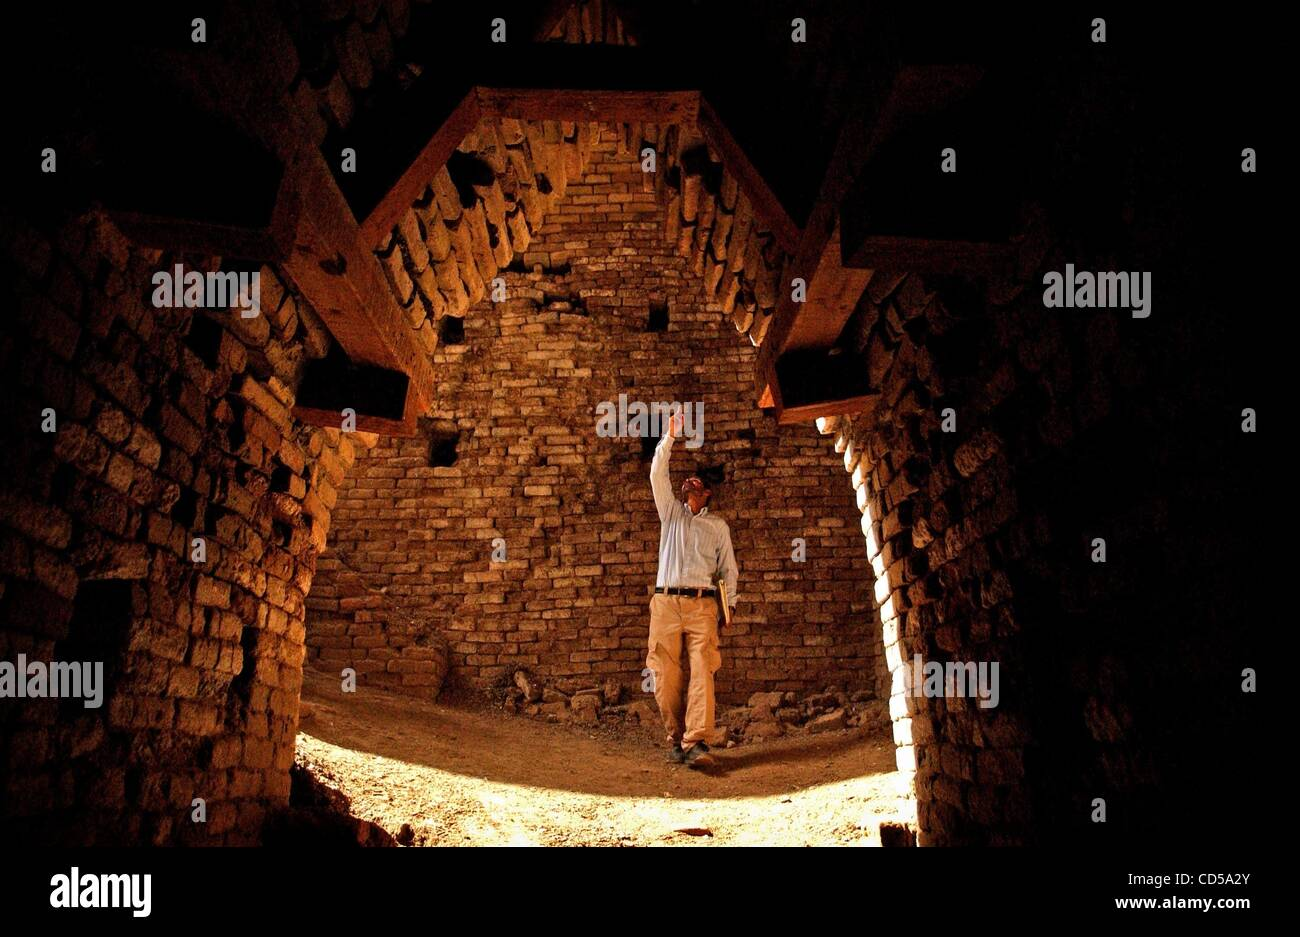 Mar 01, 2008 - Tallil, Iraq - Curator DIEF MOHSSEIN NAIIF AL-GIZZY shows one of the royal tombs at the SumerianStock Photo